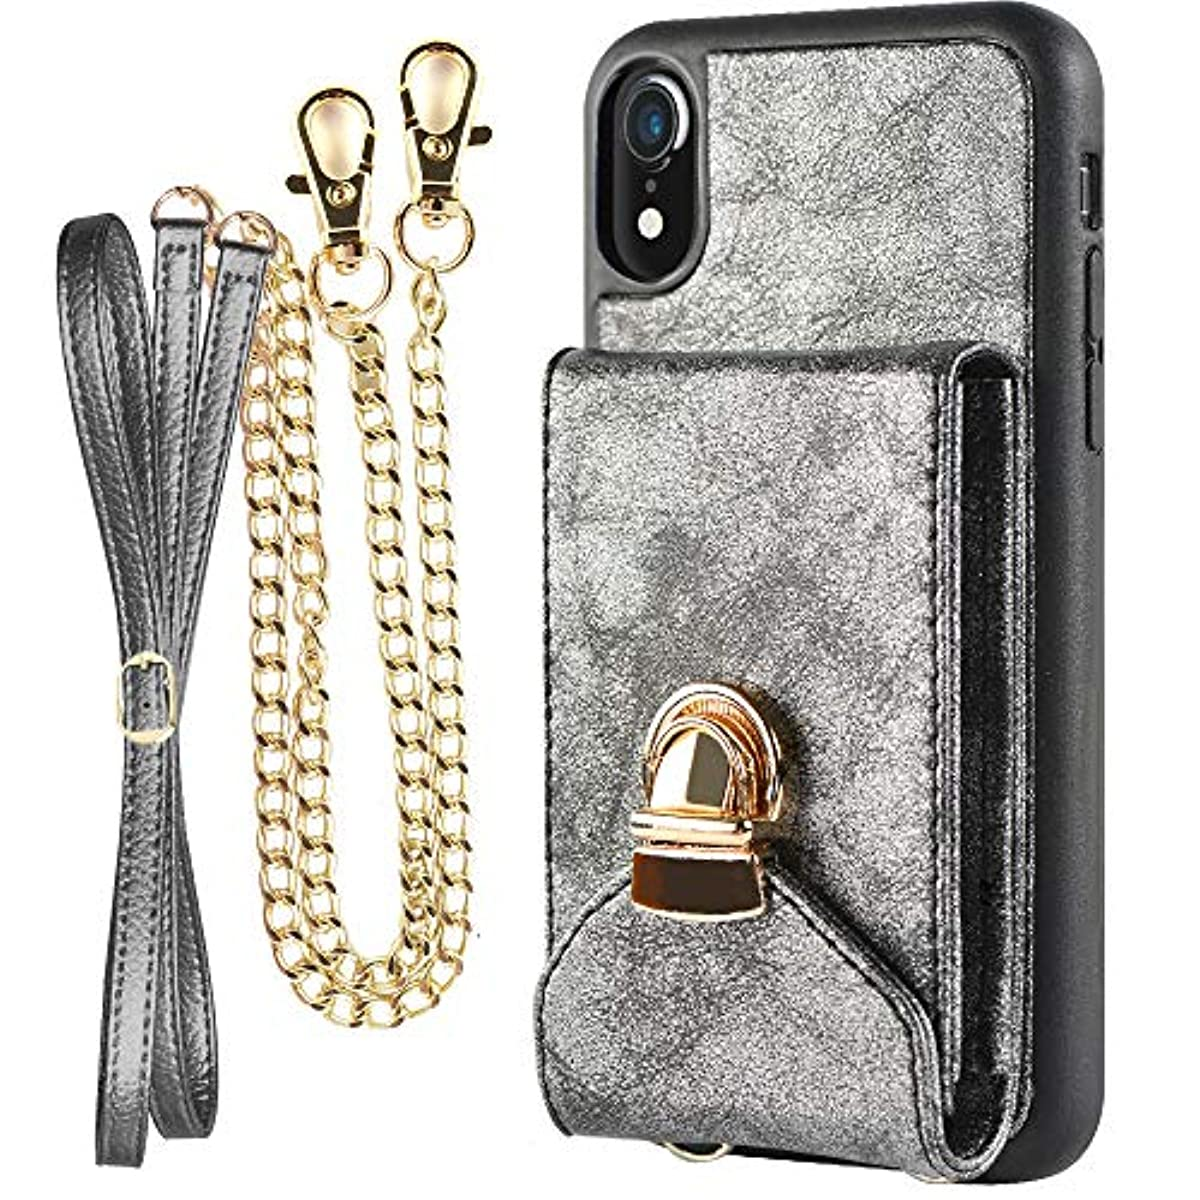 pretty nice 74f15 48e55 Details about Wallet Case For iPhone XR Credit Card Holder Purse Cell Phone  With Strap Black